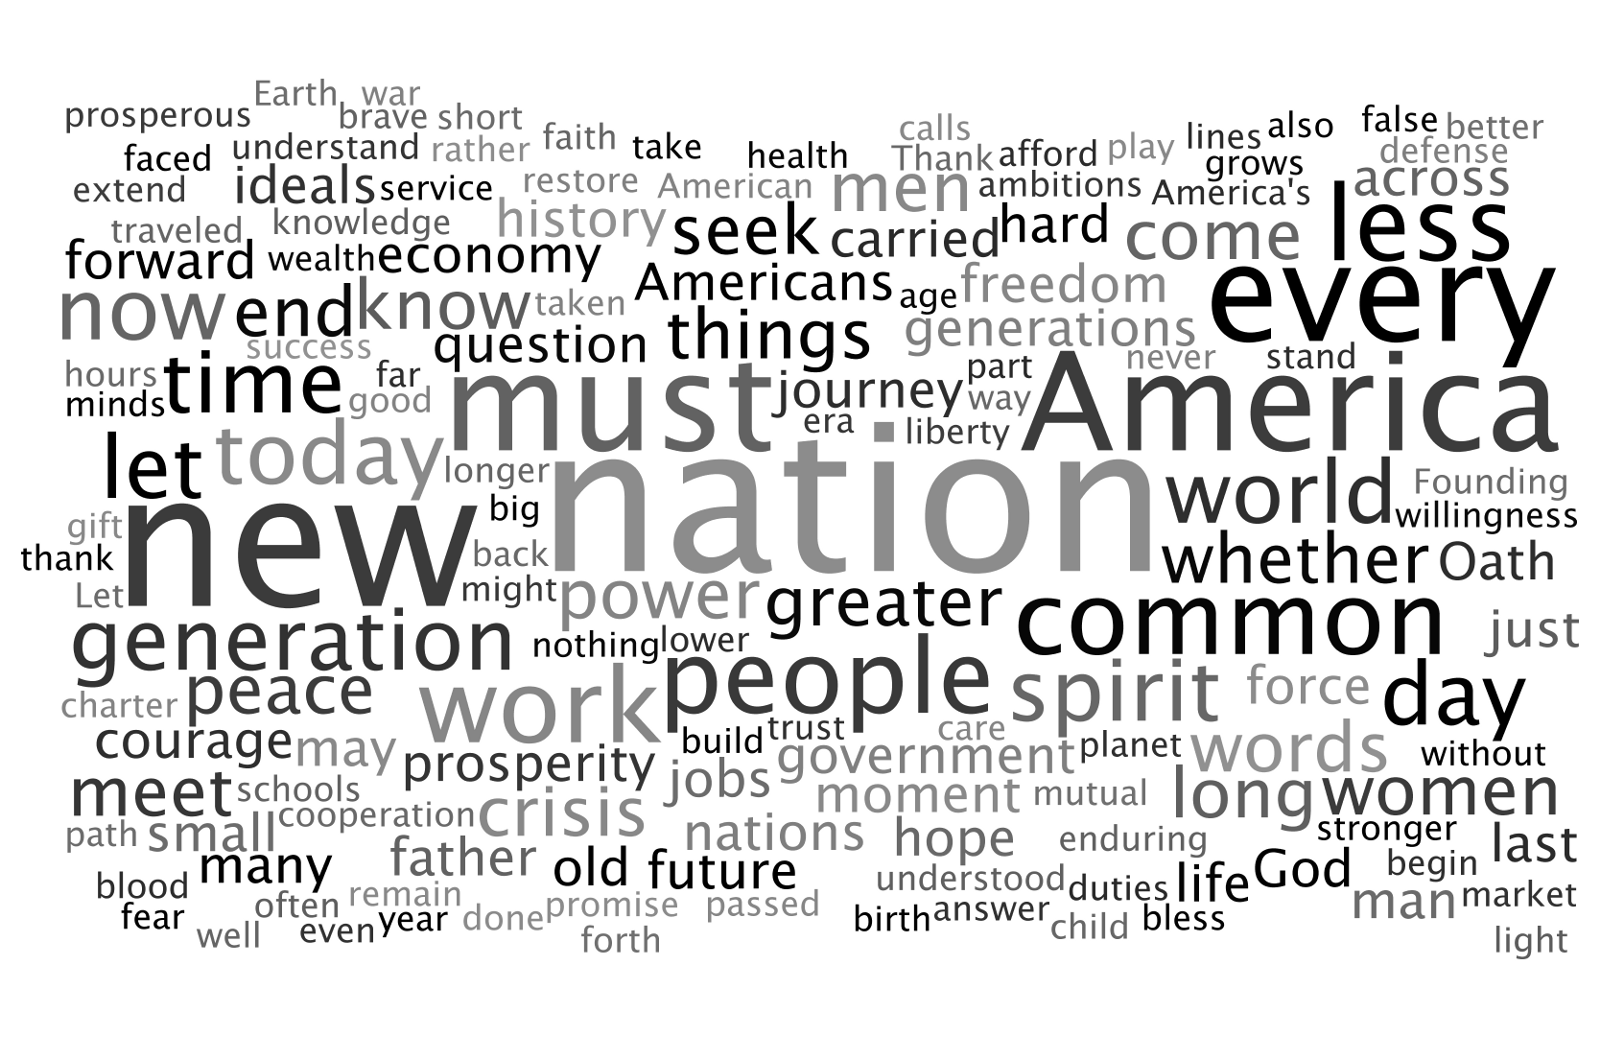 a linguistic analysis of obama's inaugural Inaugural address by president barack hussein obama my fellow citizens: i stand here today humbled by the task before us, grateful for the trust you've bestowed, mindful of the sacrifices borne by our ancestors.